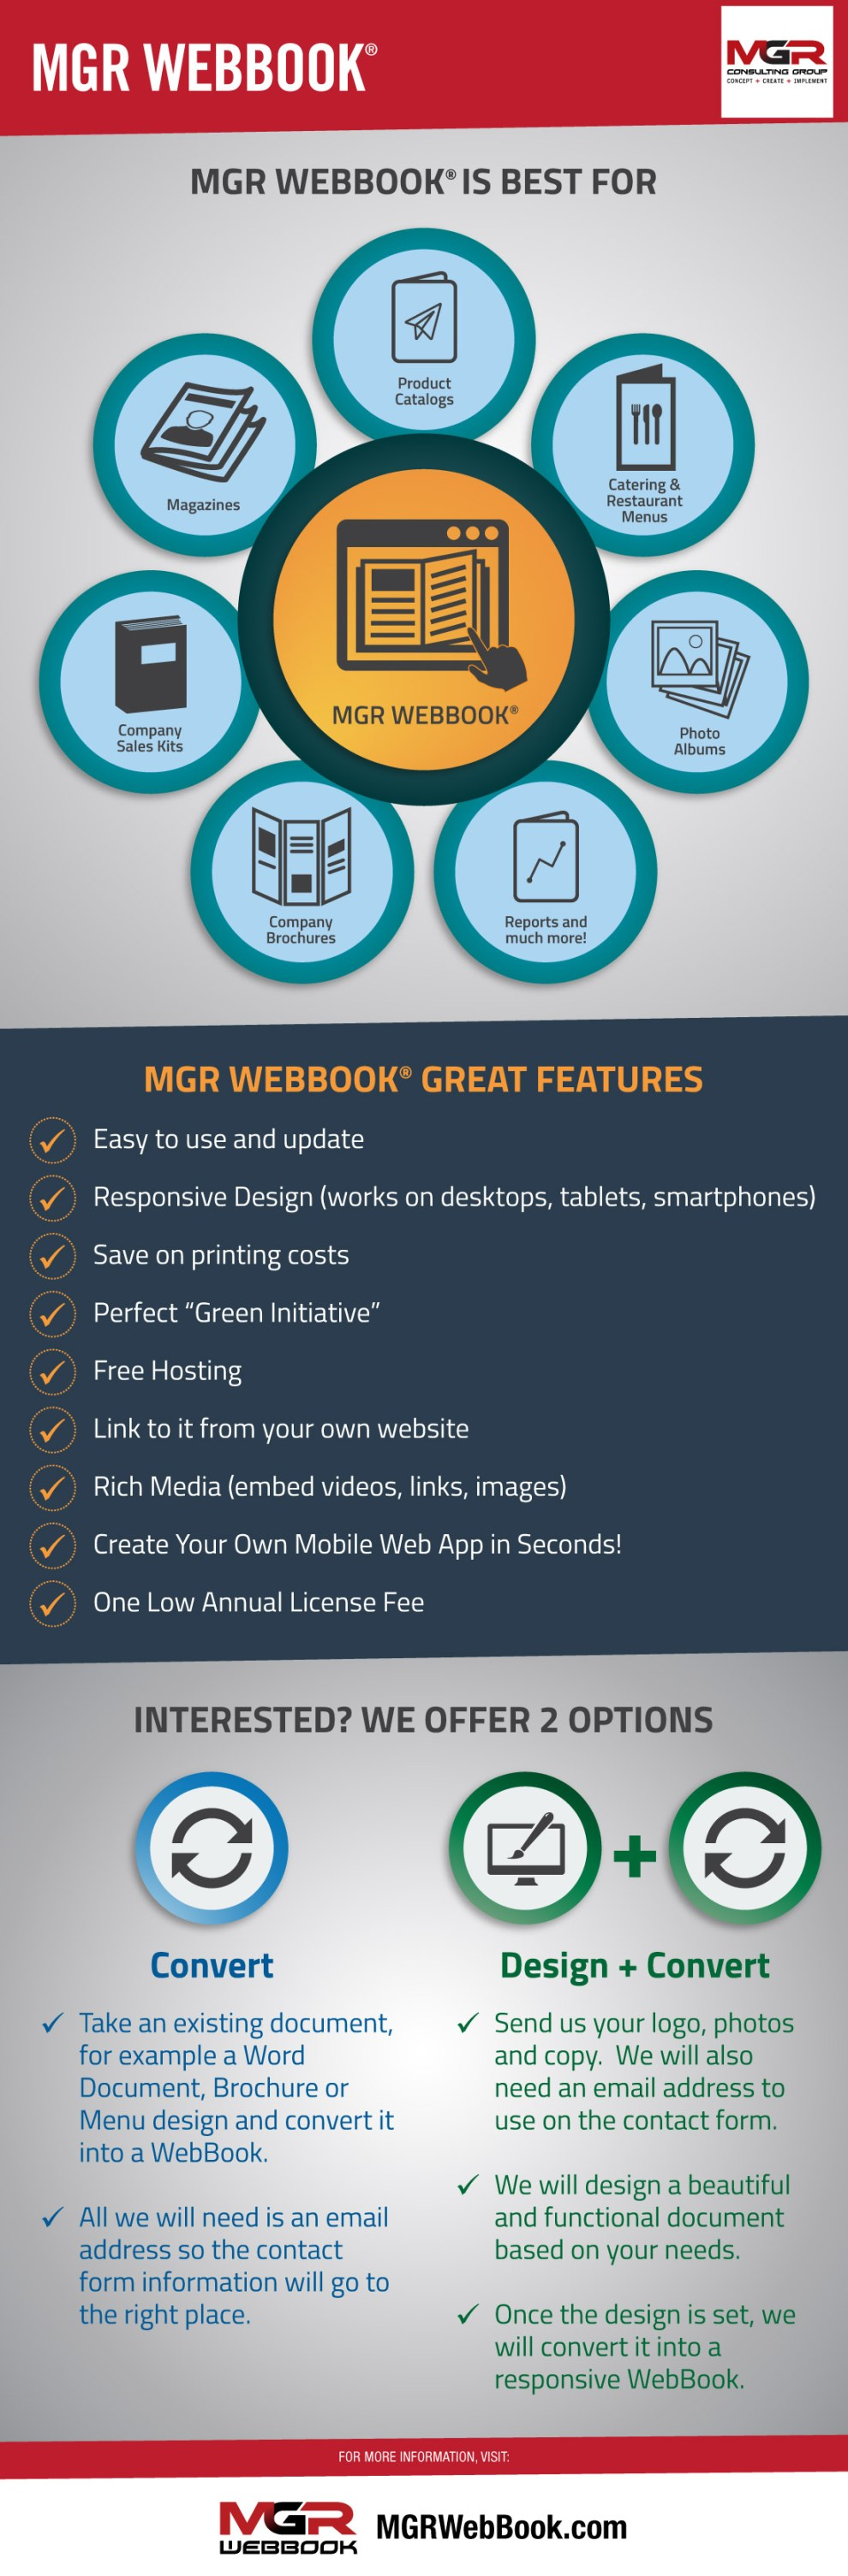 MGR_WebBook_Infographic